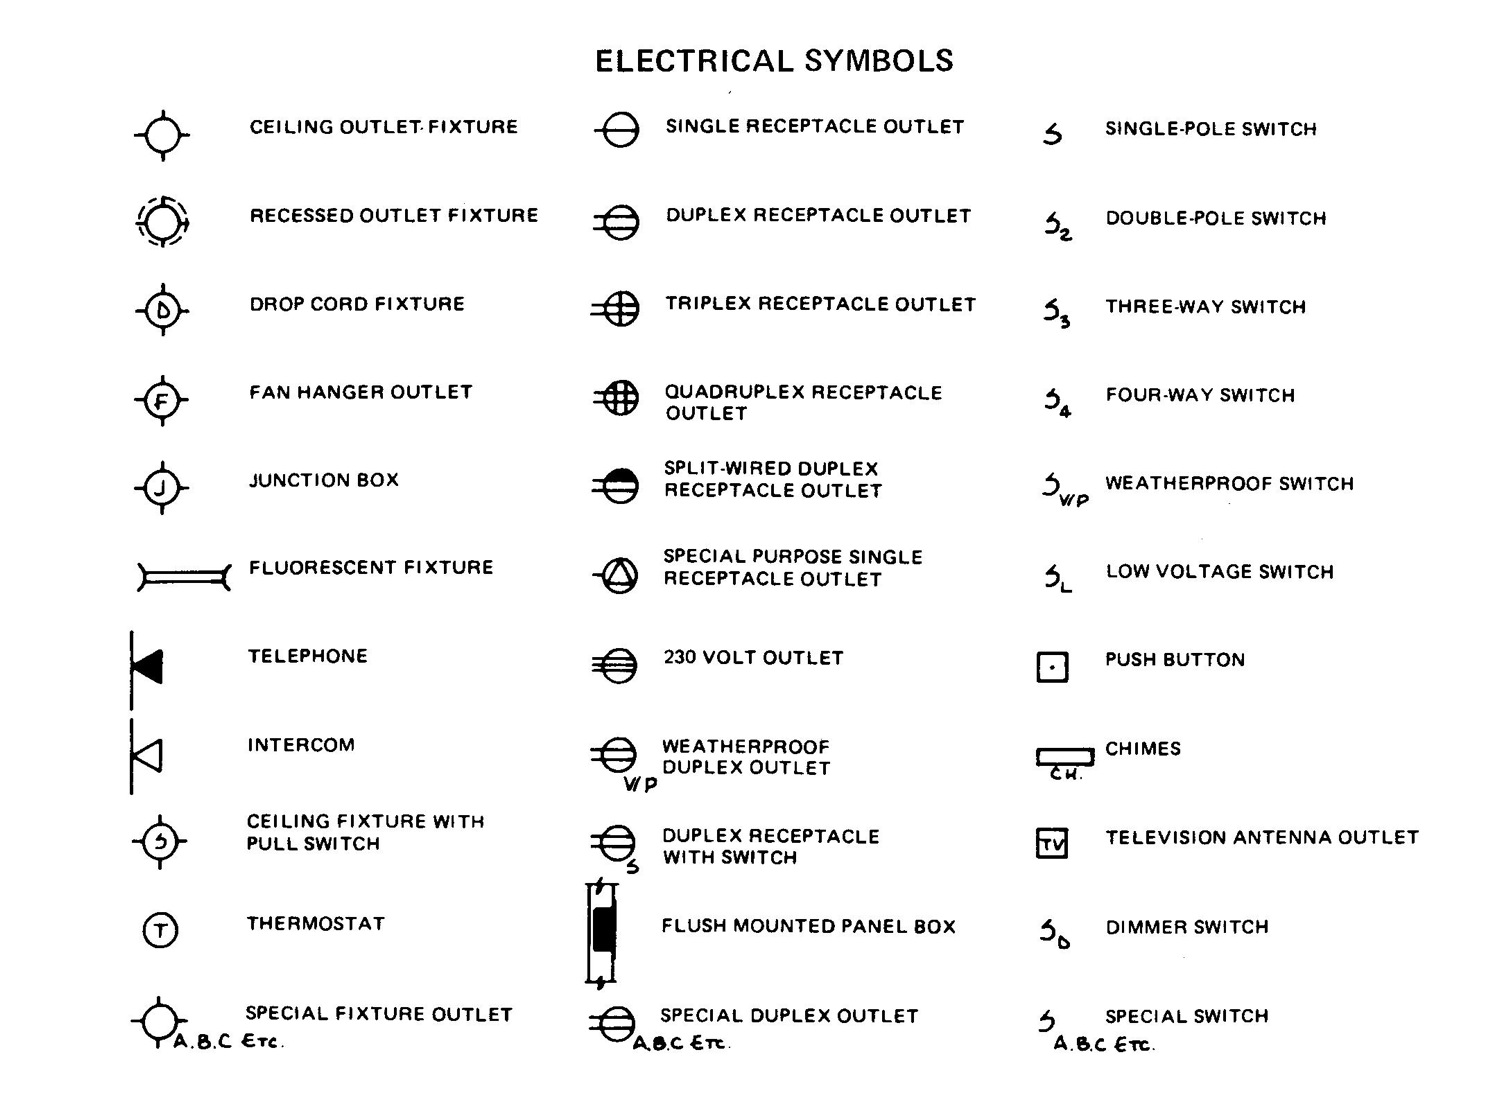 hight resolution of electrical power plan symbols wiring diagram centreelectrical power plan symbols diagrams onlineelectrical power plan symbols